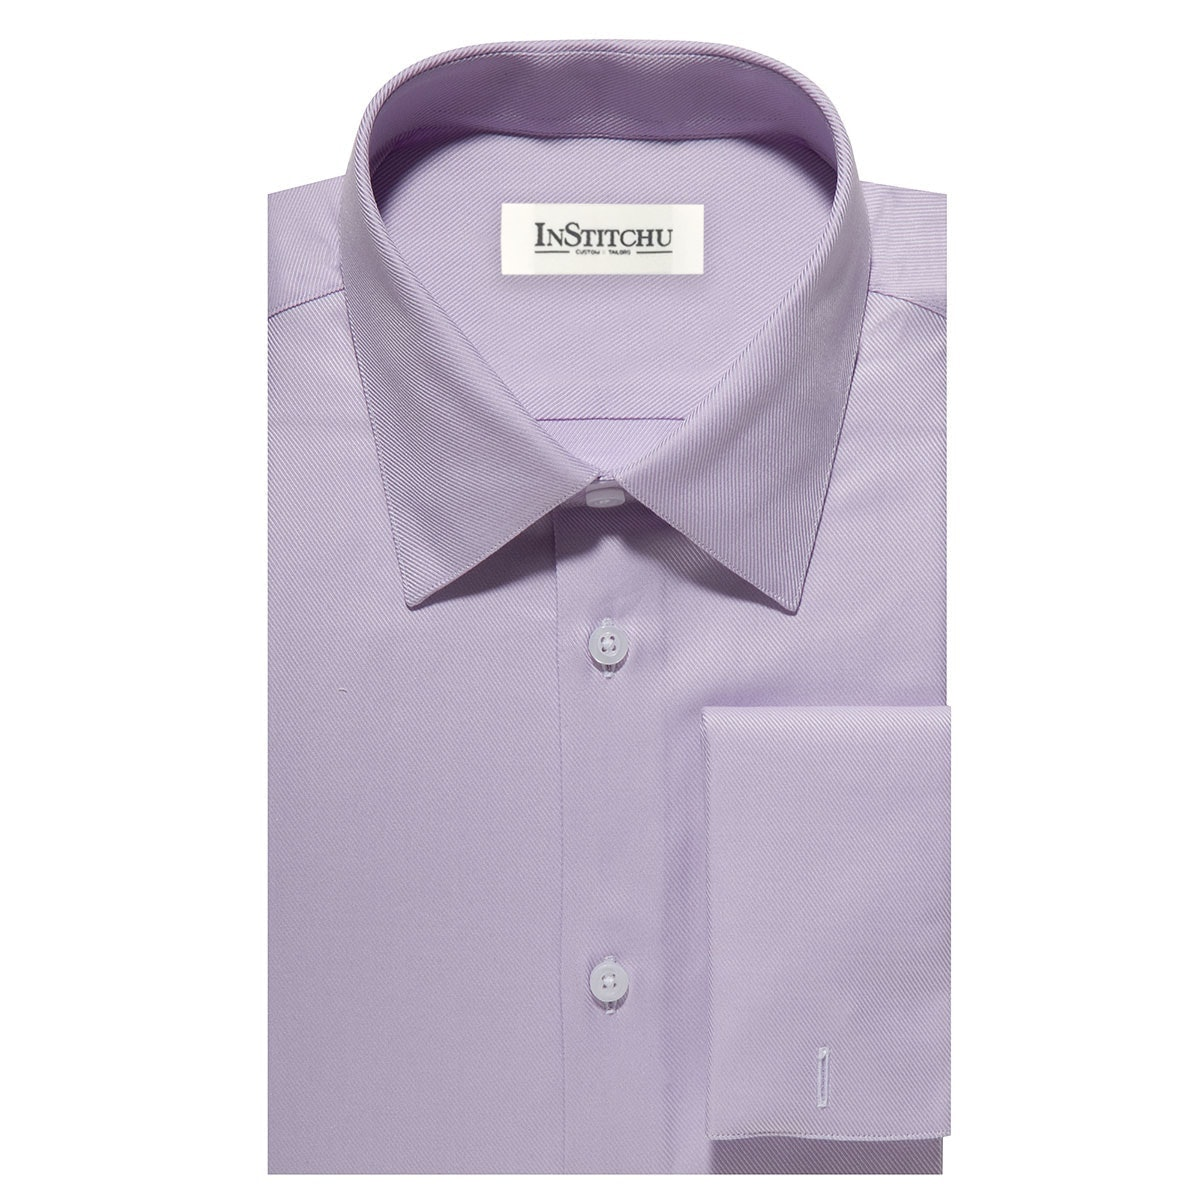 InStitchu Collection The Vilano Purple Twill Shirt